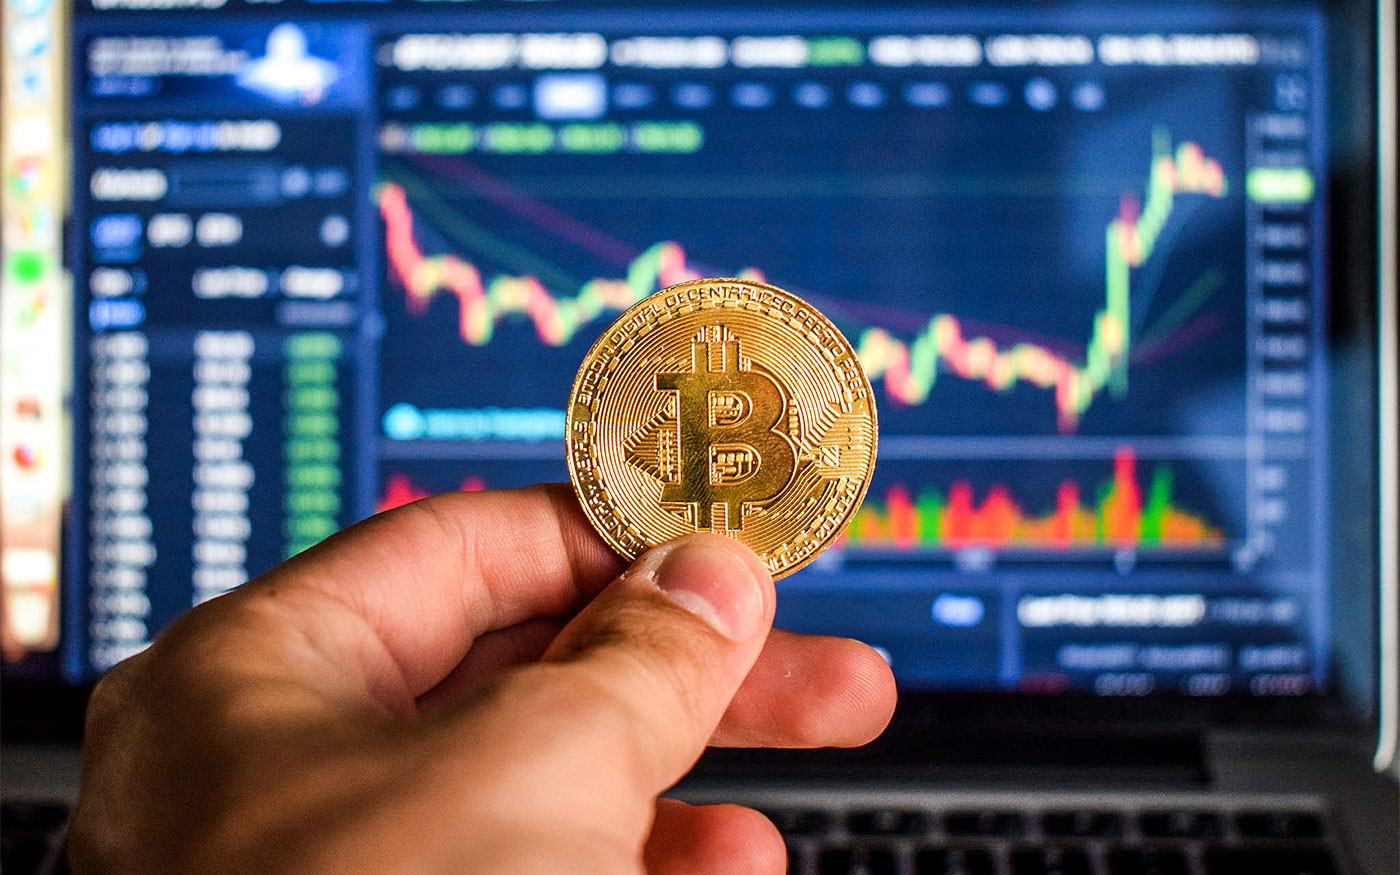 Bitcoin market dominance falls to three-year low of 40%